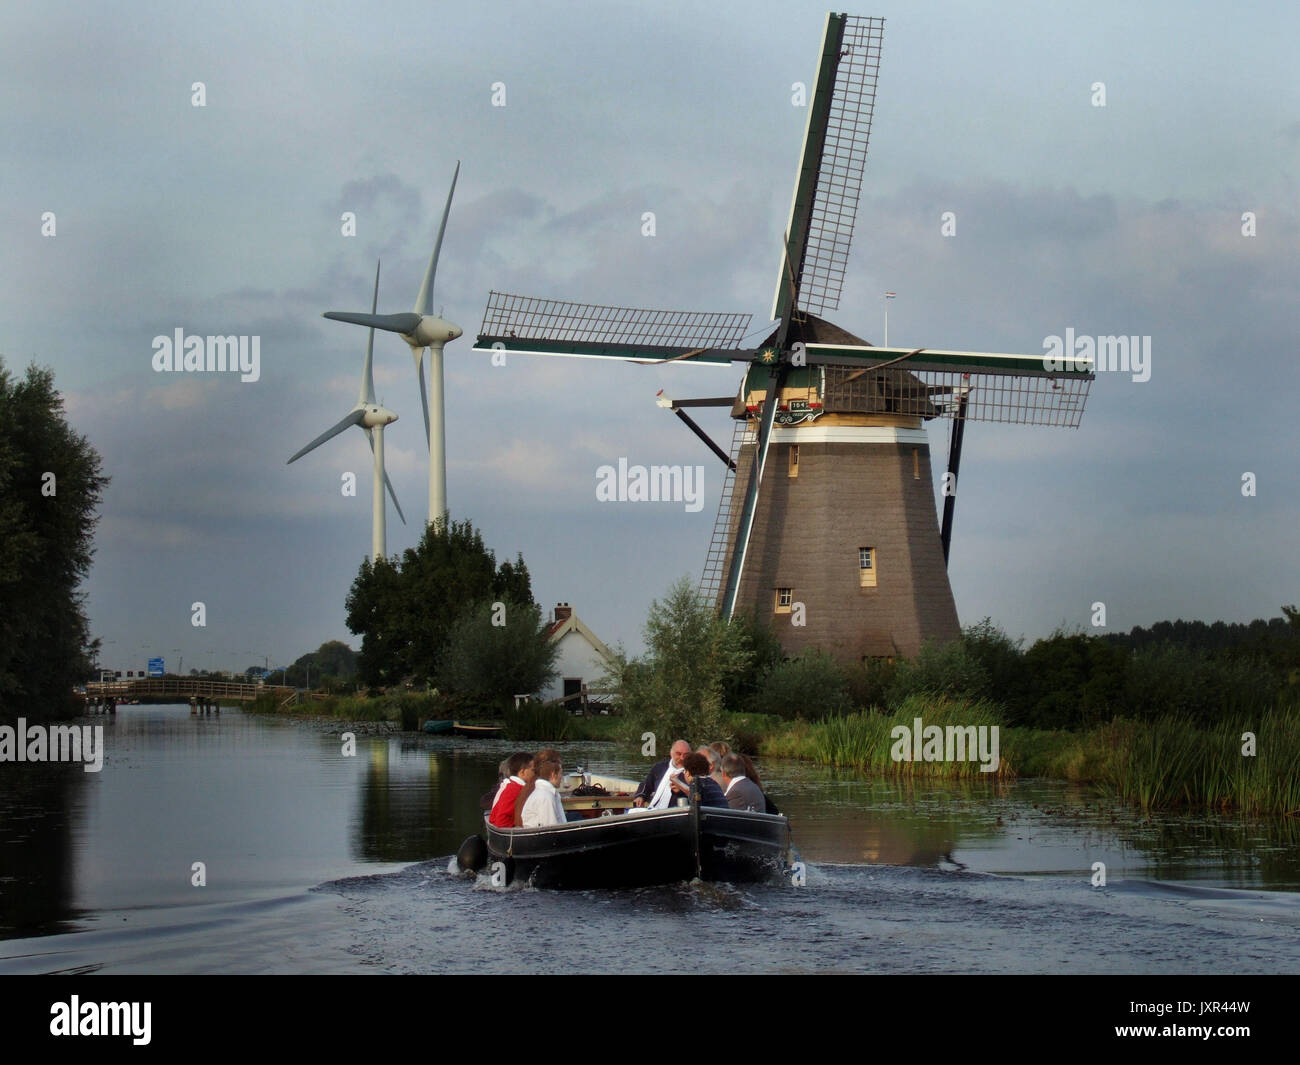 Wind turbines side by side with traditional Dutch windmill near Leiden Netherlands August 12th 2016  Wind energy or wind power describes the process by which wind is used to generate electricity. Wind turbines convert the kinetic energy in wind to electricity by rotating propeller-like blades around a rotor. The rotor turns the drive shaft, which turns an electric generator. Three key factors affect the amount of energy a turbine can harness from the wind: wind speed, air density, and swept area. Renewable energy is energy that is collected from renewable resources, which are naturally repleni - Stock Image